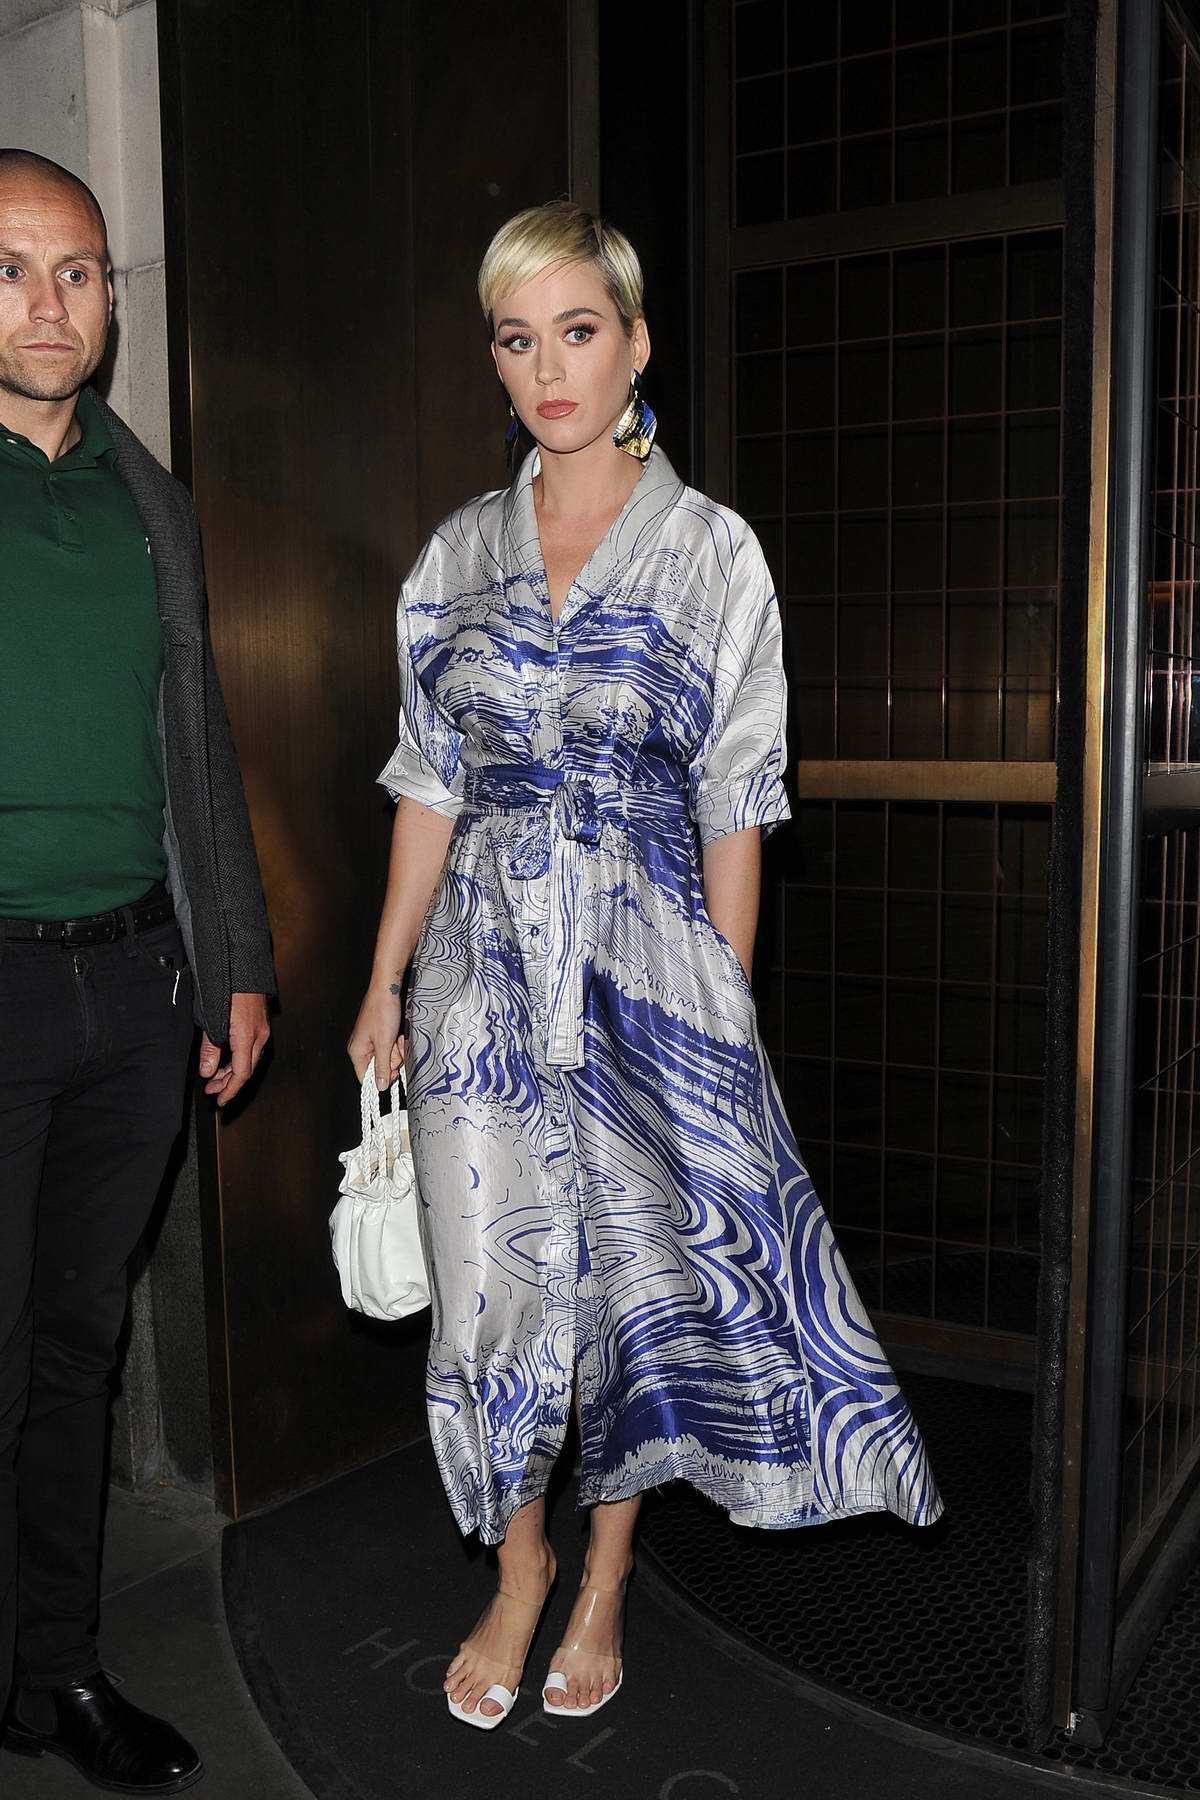 Katy Perry seen leaving her hotel and arriving at Sexy Fish restaurant in London, UK